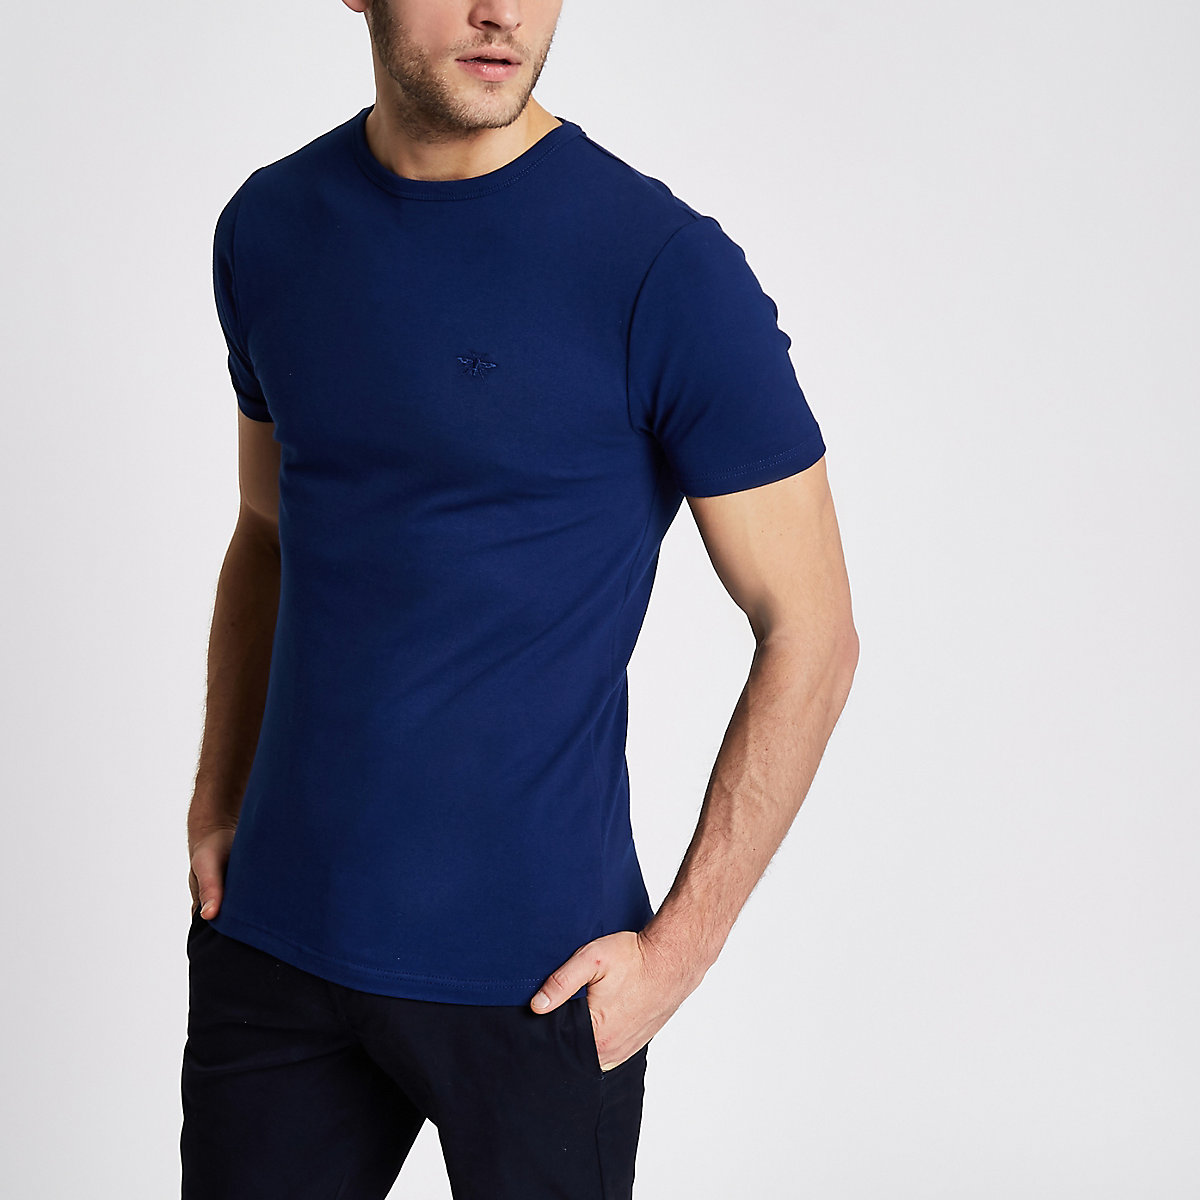 Navy pique muscle fit T-shirt